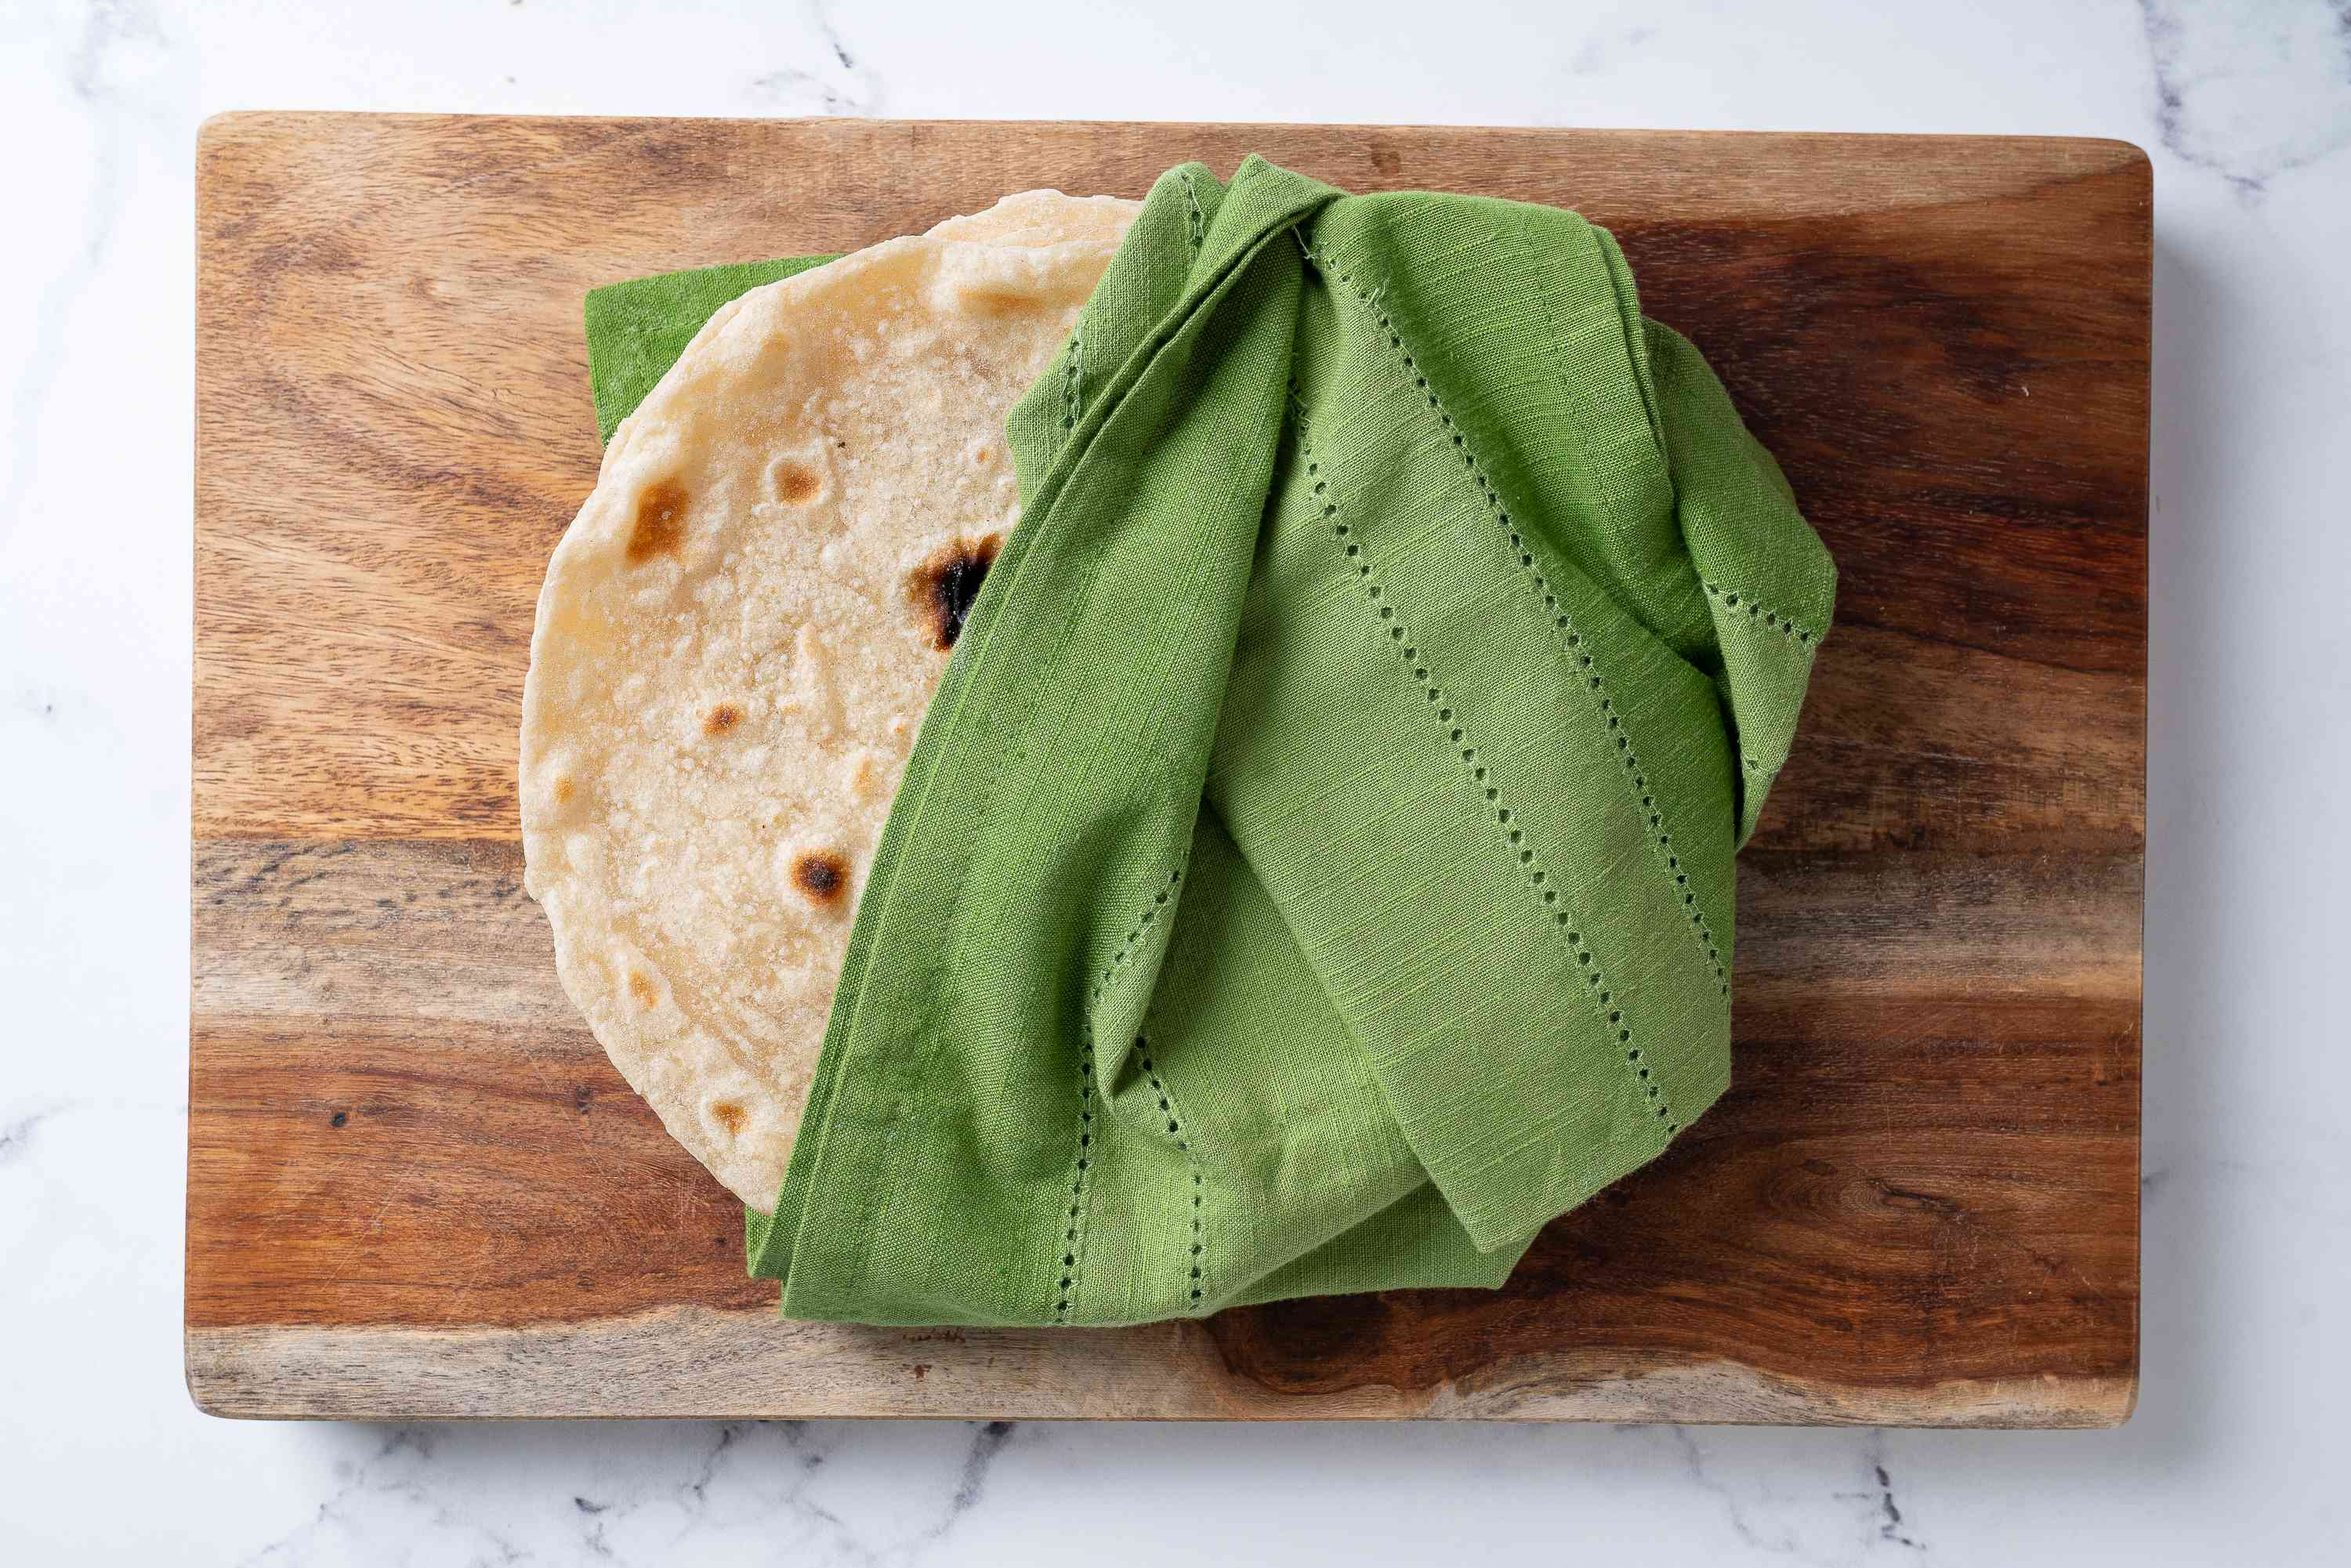 Homemade Flour Tortillas wrapped in a towel